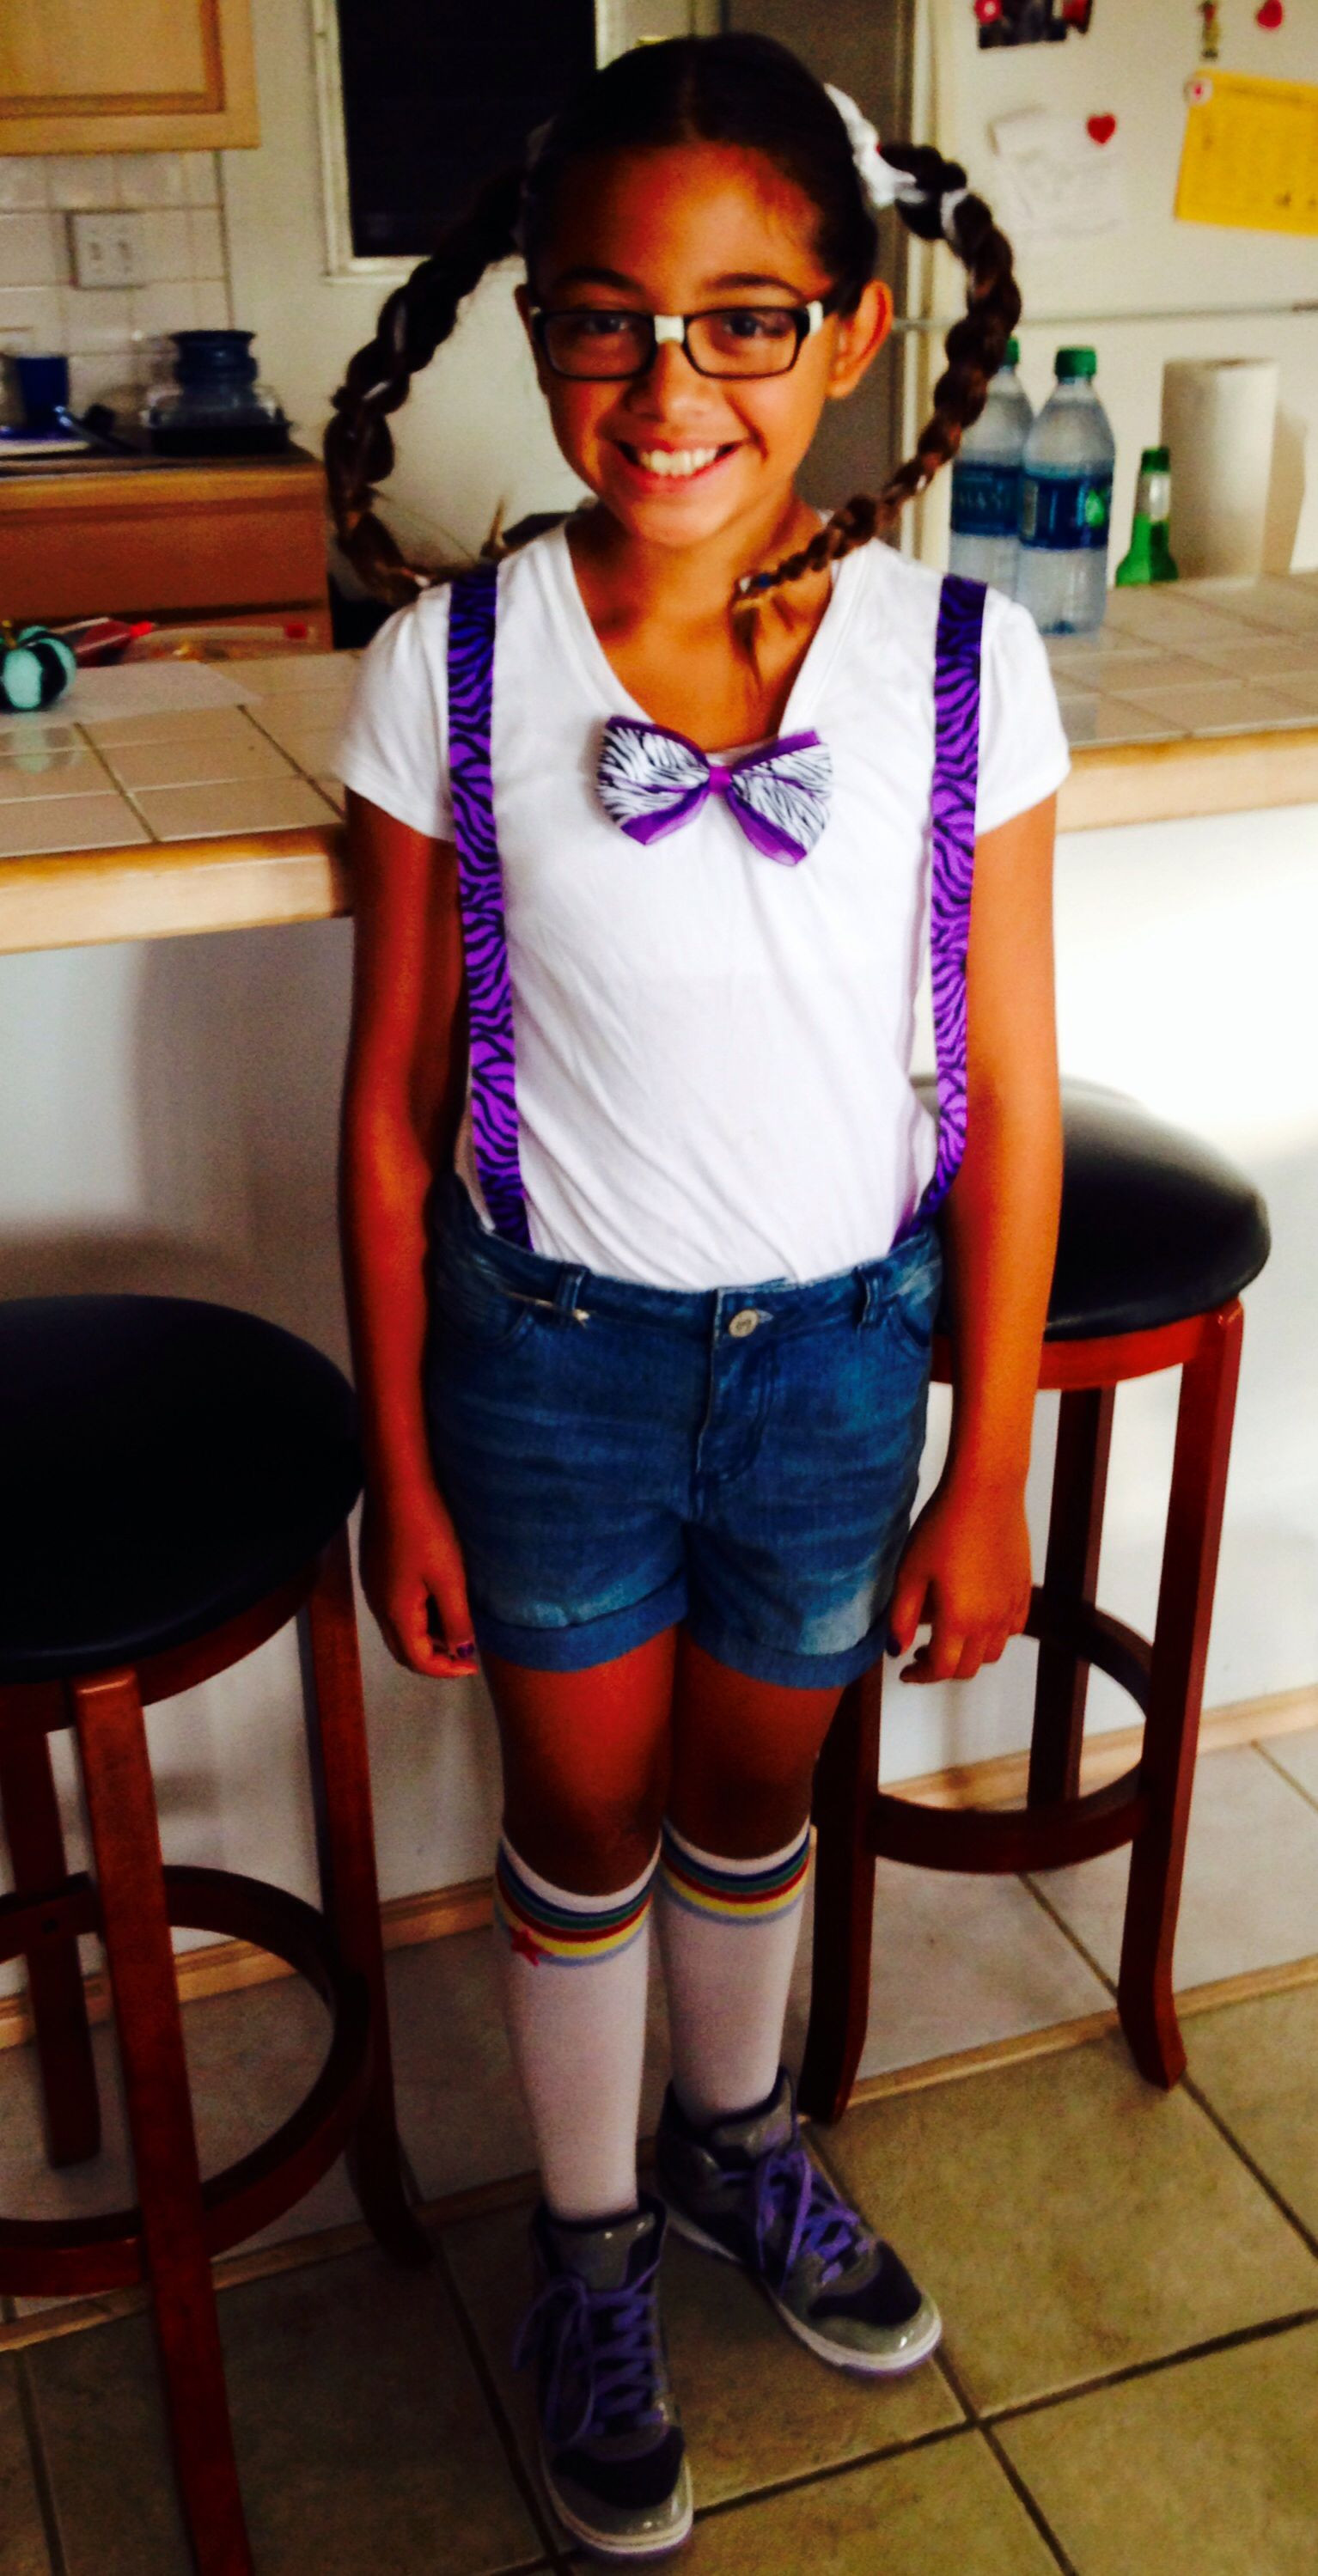 Best ideas about Nerd Costume DIY . Save or Pin 54 HALLOWEEN COSTUME IDEAS DUH WHAT ELSE ITS OCTOBER Now.